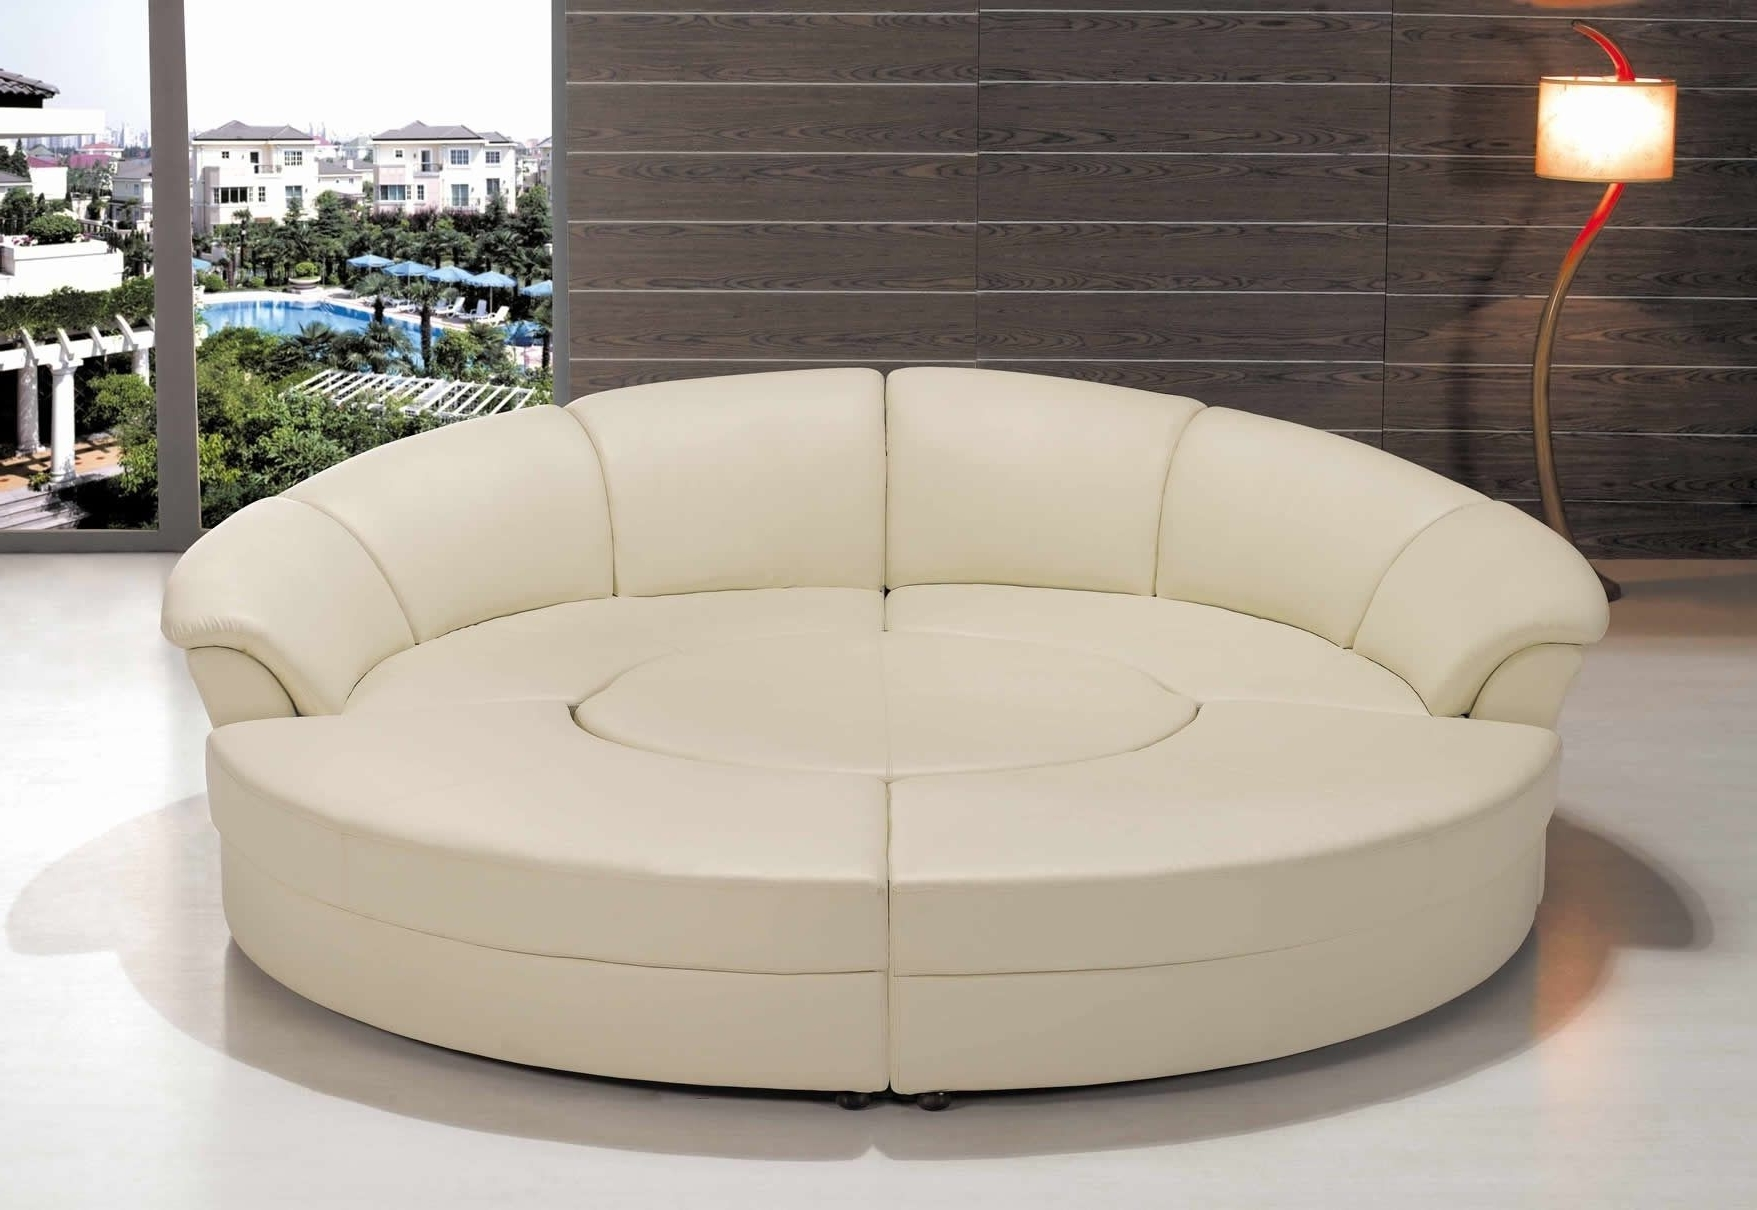 Semi Circular Sectional Sofa 2 – Semi Circular Sofa Uk, Sofa With Regard To Most Up To Date Round Sofas (View 3 of 15)